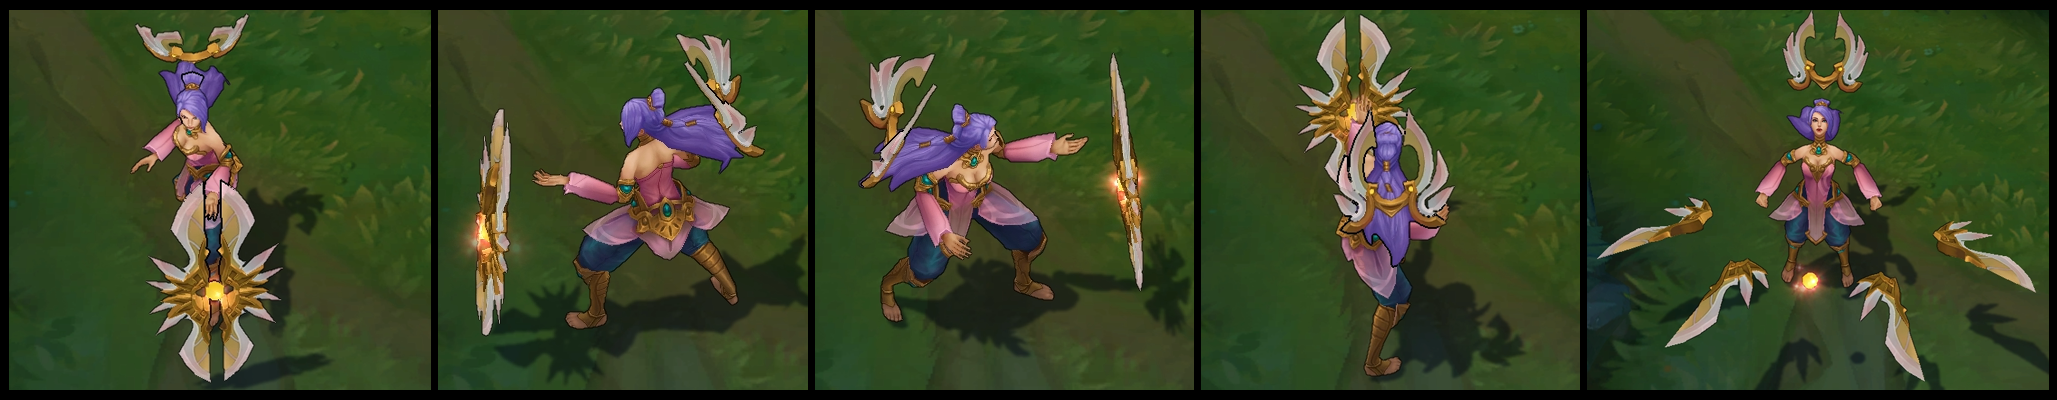 Order of the Lotus Irelia Poses I